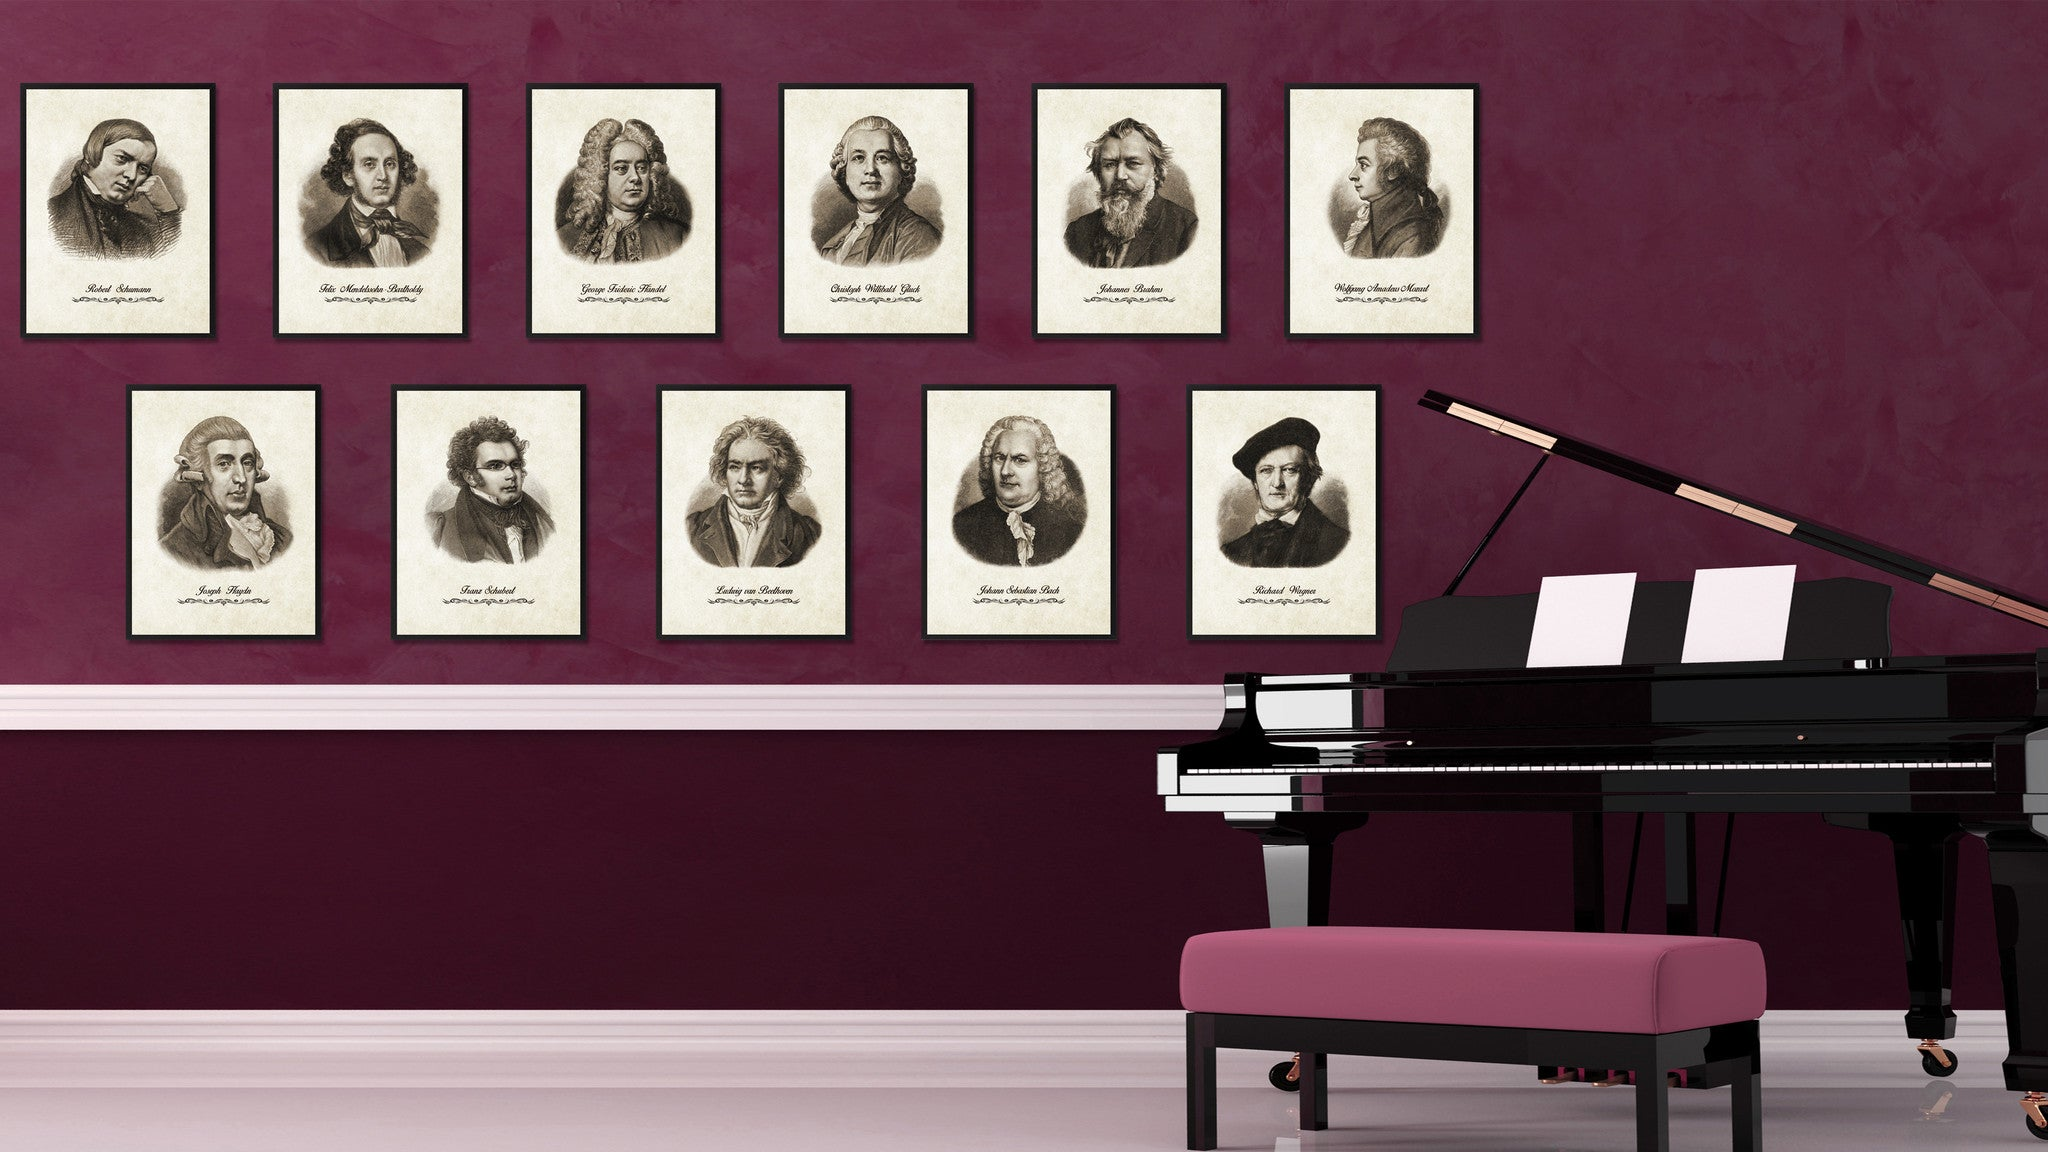 Bach Musician Canvas Print Pictures Frames Music Home Décor Wall Art Gifts